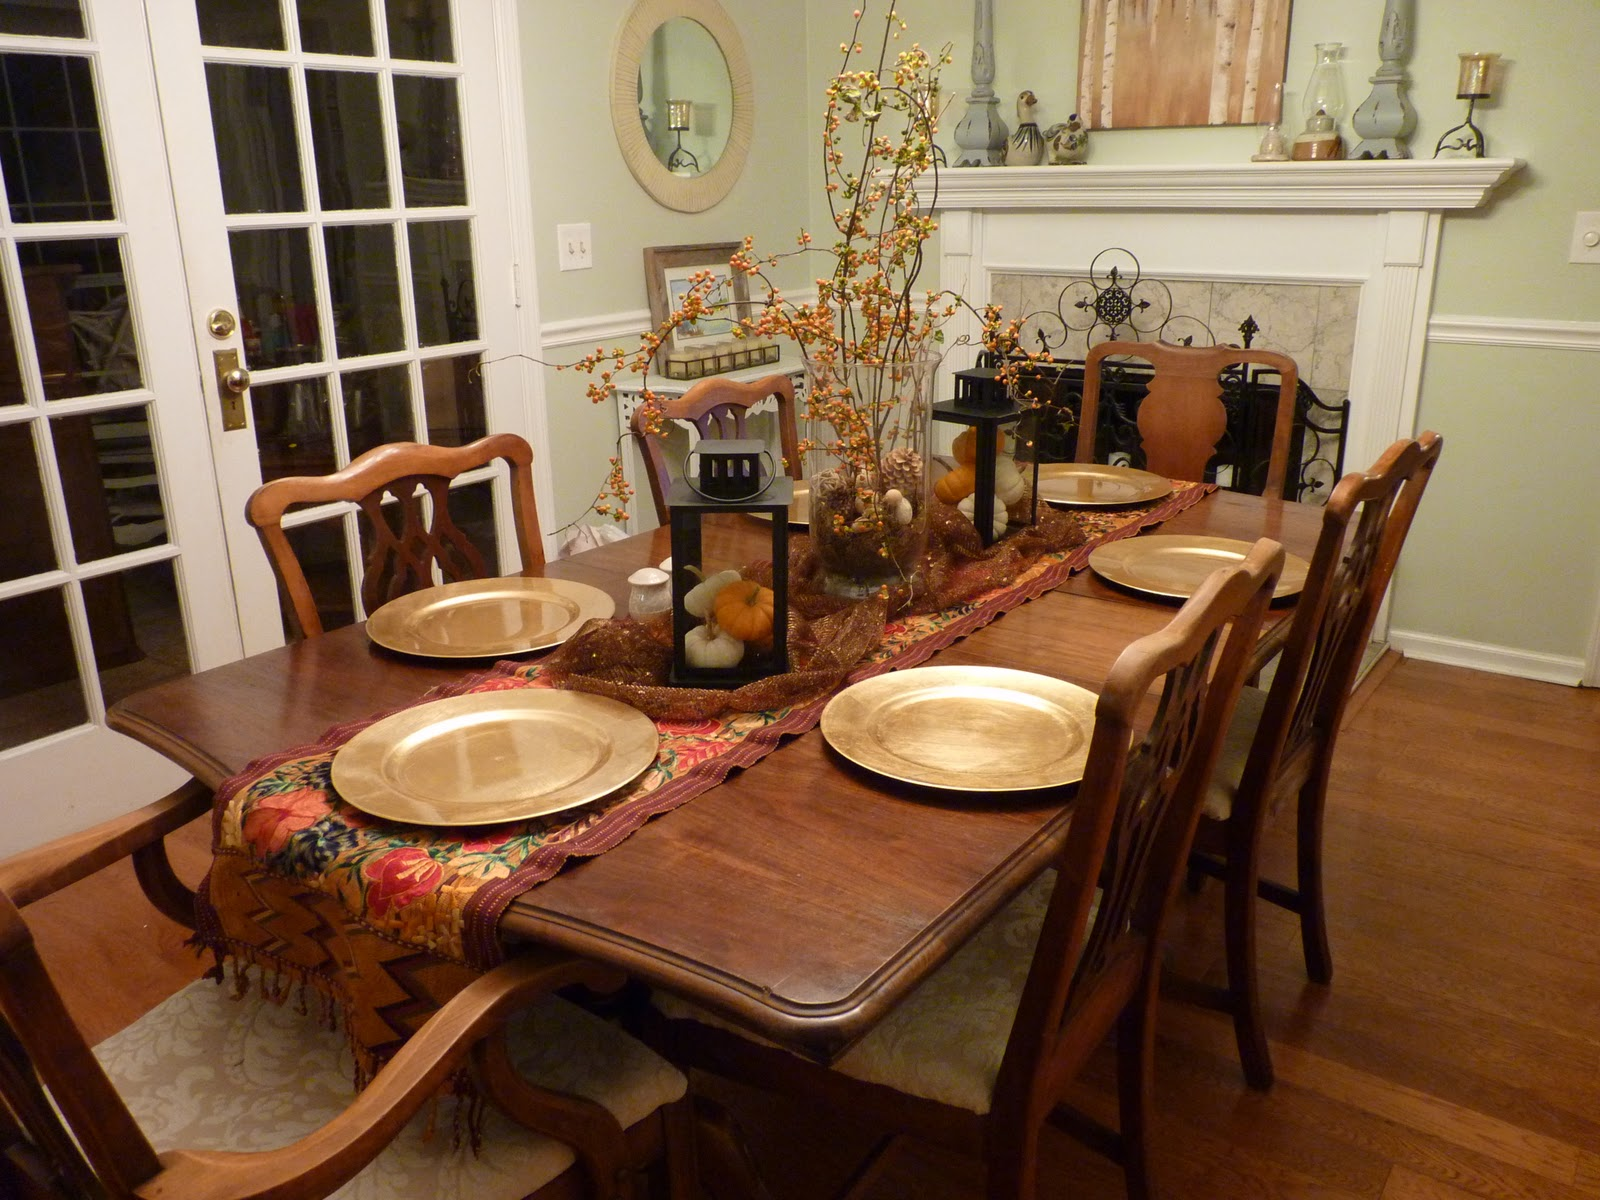 ideas for decorating dining room table photo - 2